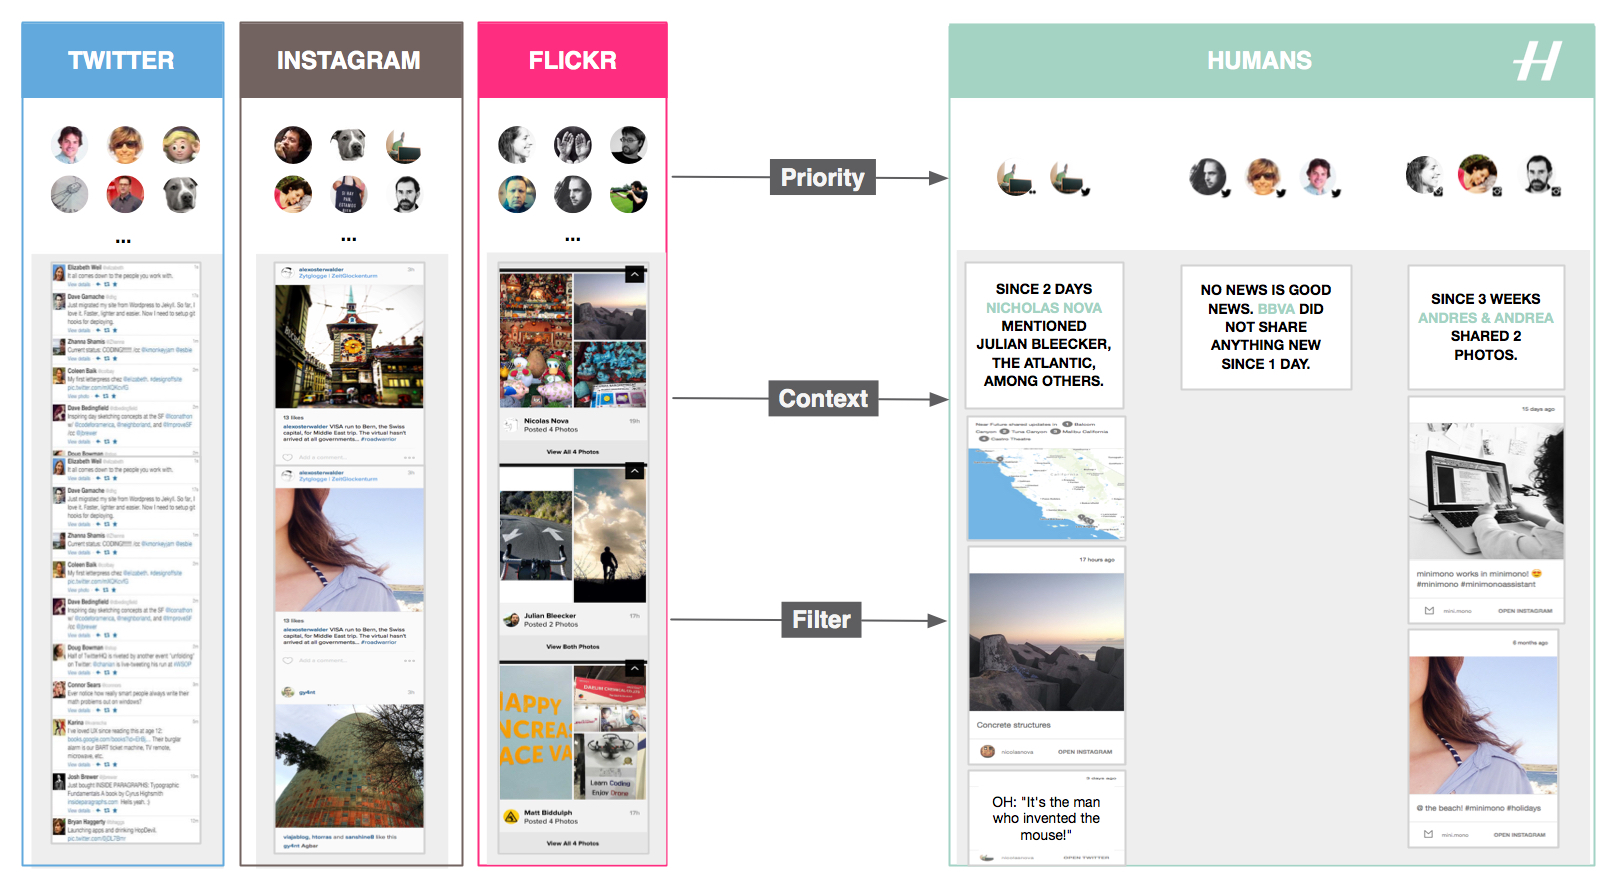 Design Technology Near Future Laboratory Rc Car Circuit Exposed Flickr Photo Sharing Humans Gives Means To Filter Categorize And Prioritize Feeds Spread Across Multiple Services Like